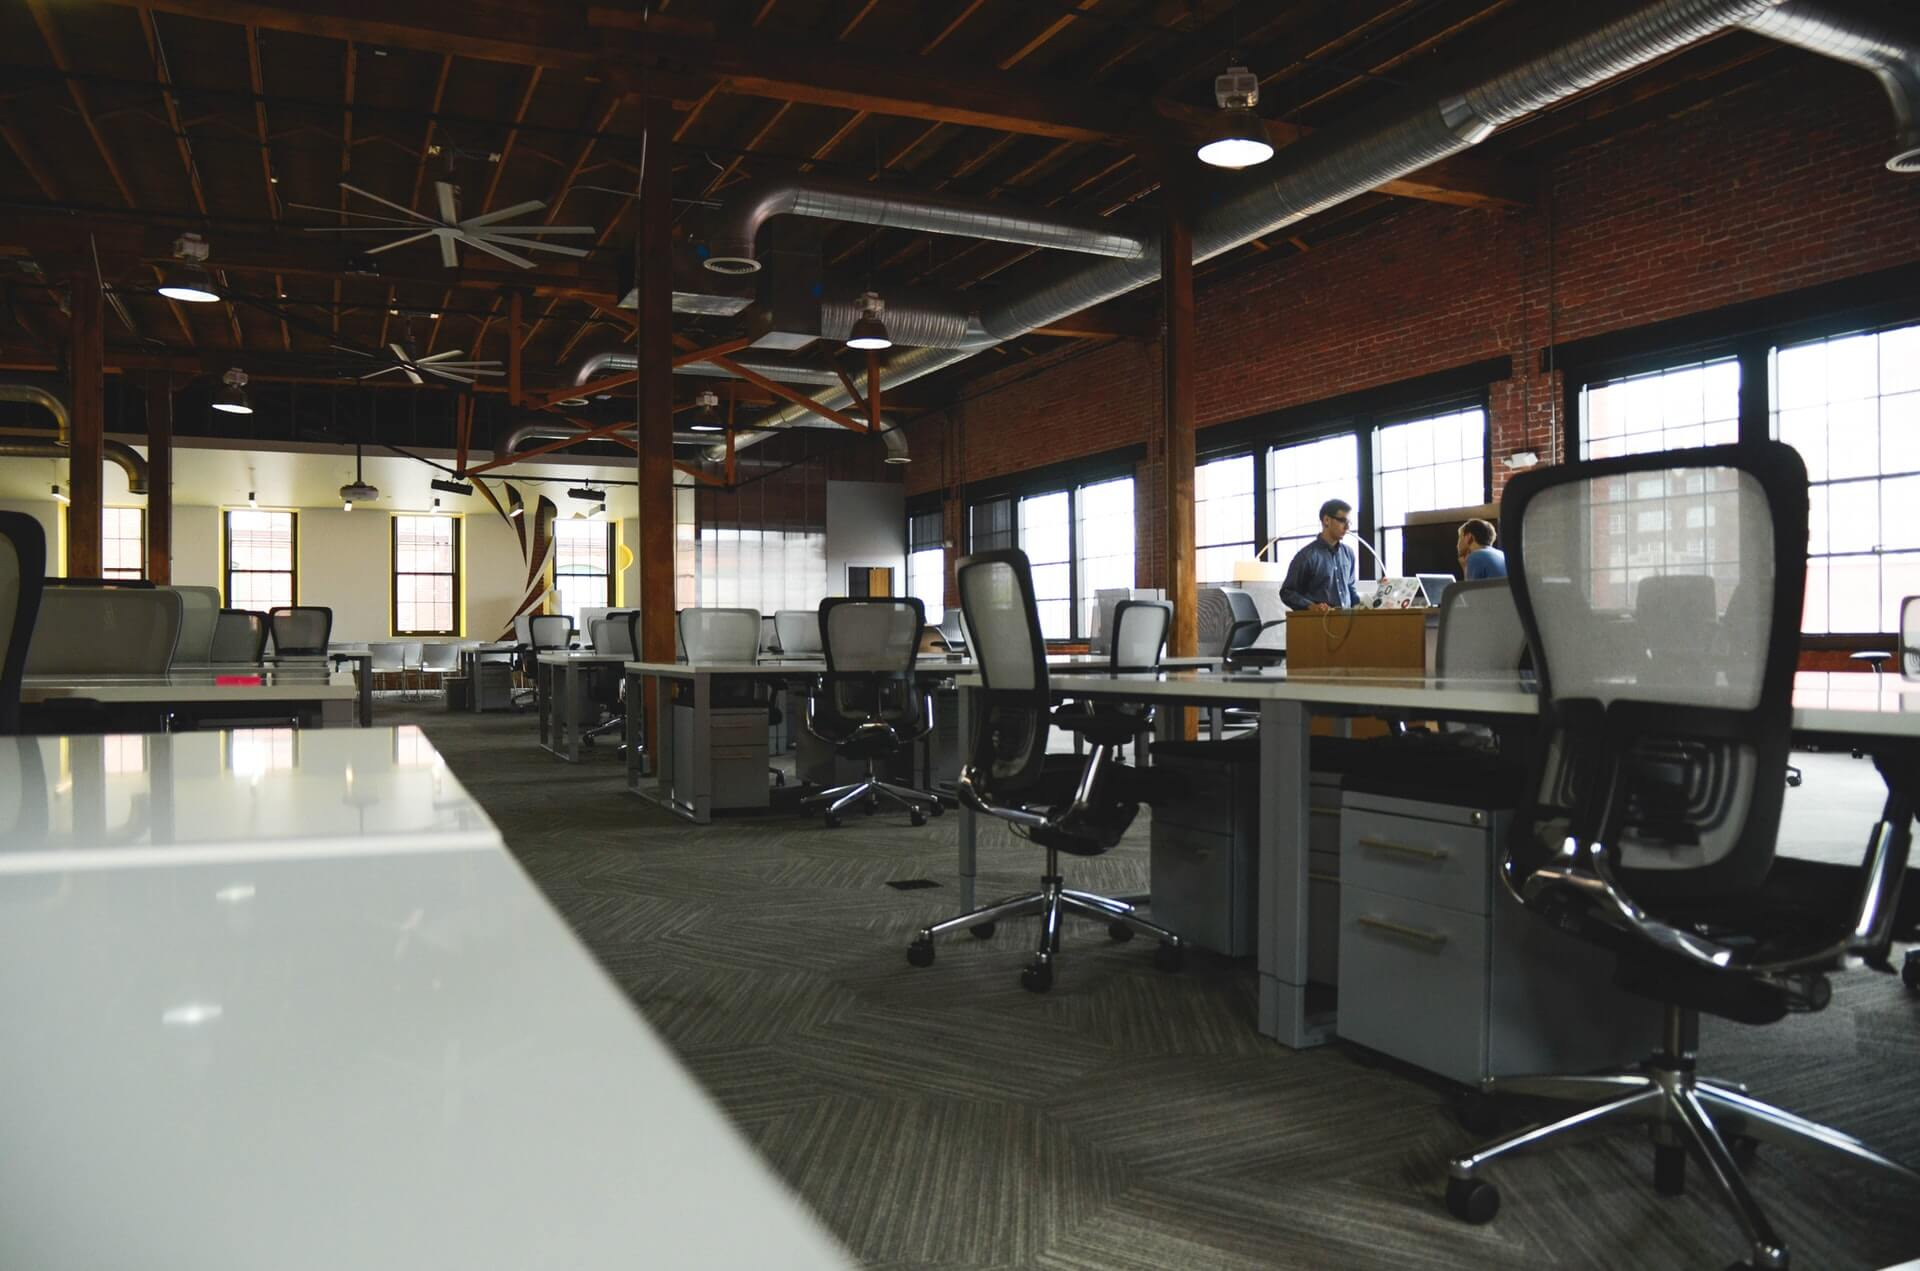 How to build a sustainable design for your office